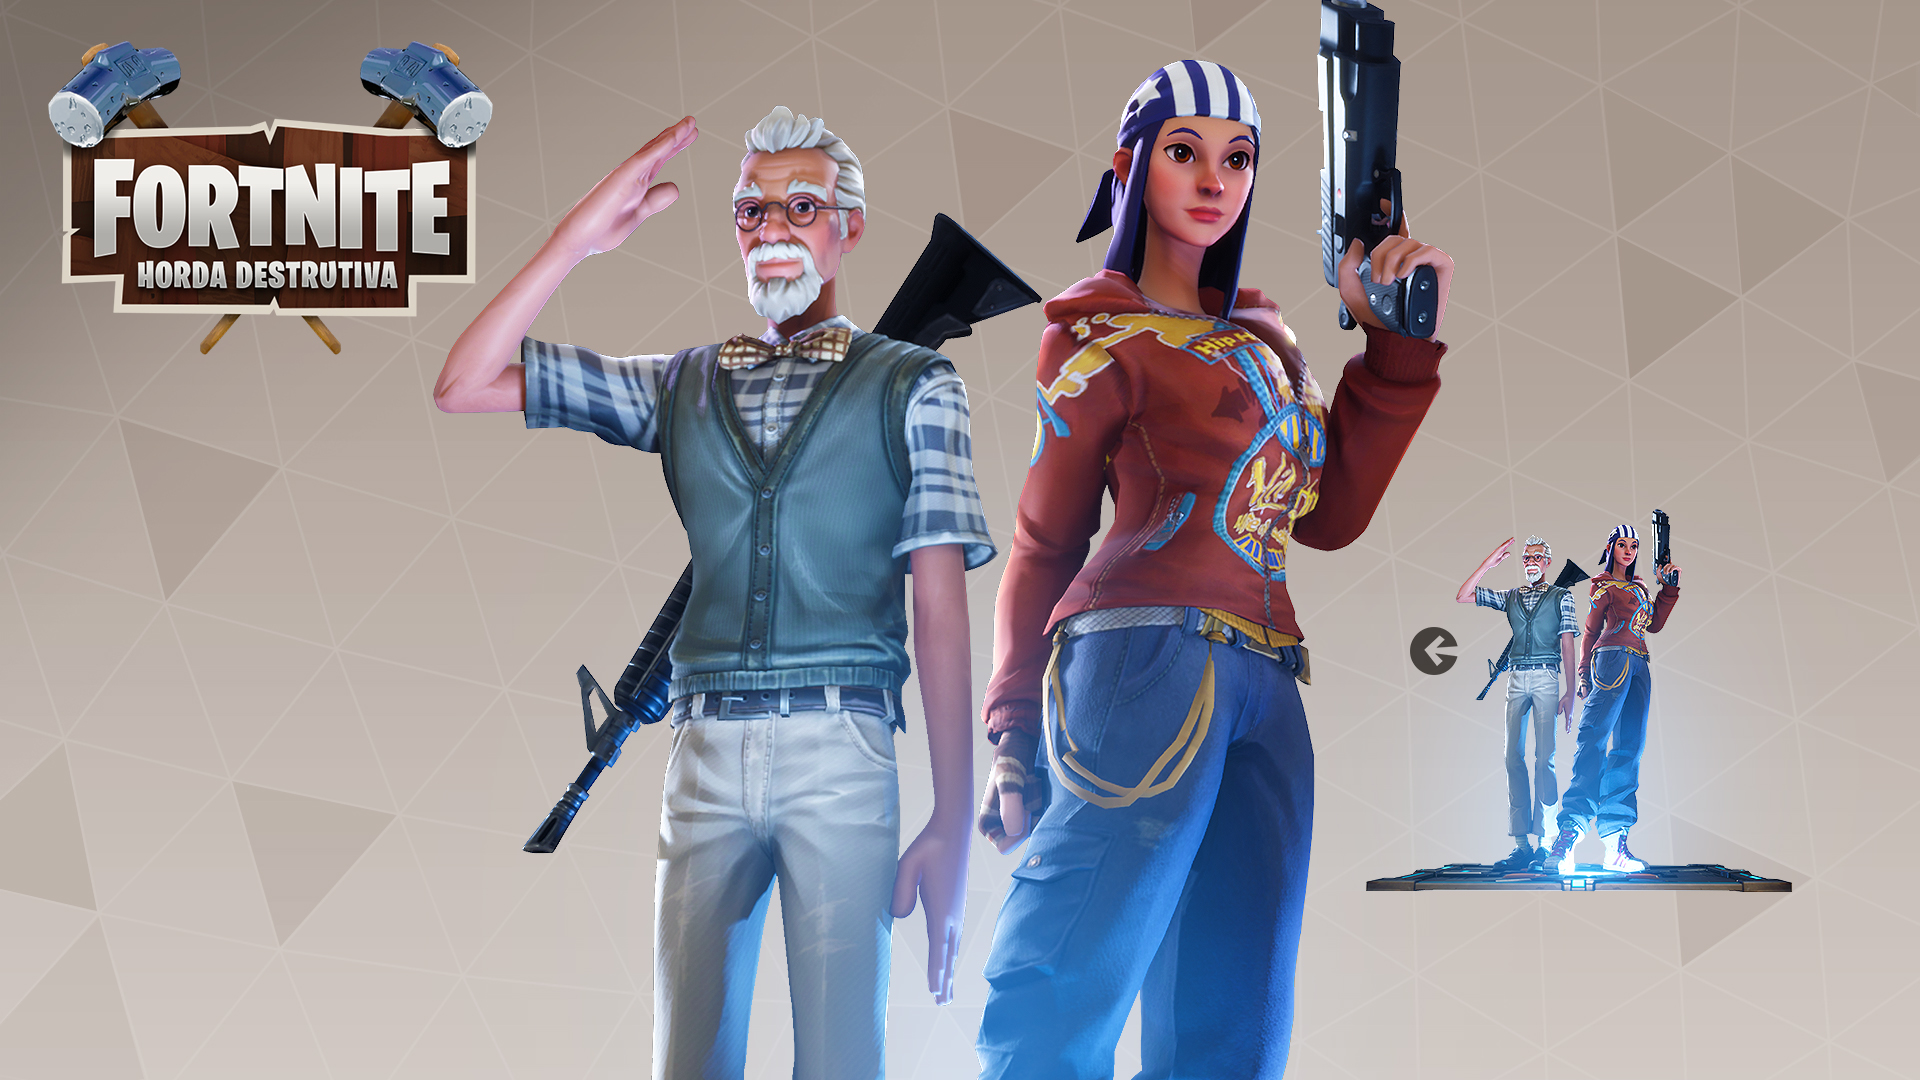 Fortnite%2Fblog%2Fea-1-7-patch-notes%2FBR_PT-HB-Defenders-1920x1080-41cdb14ede6b7ad22013c80db5f221b365c1ea6f